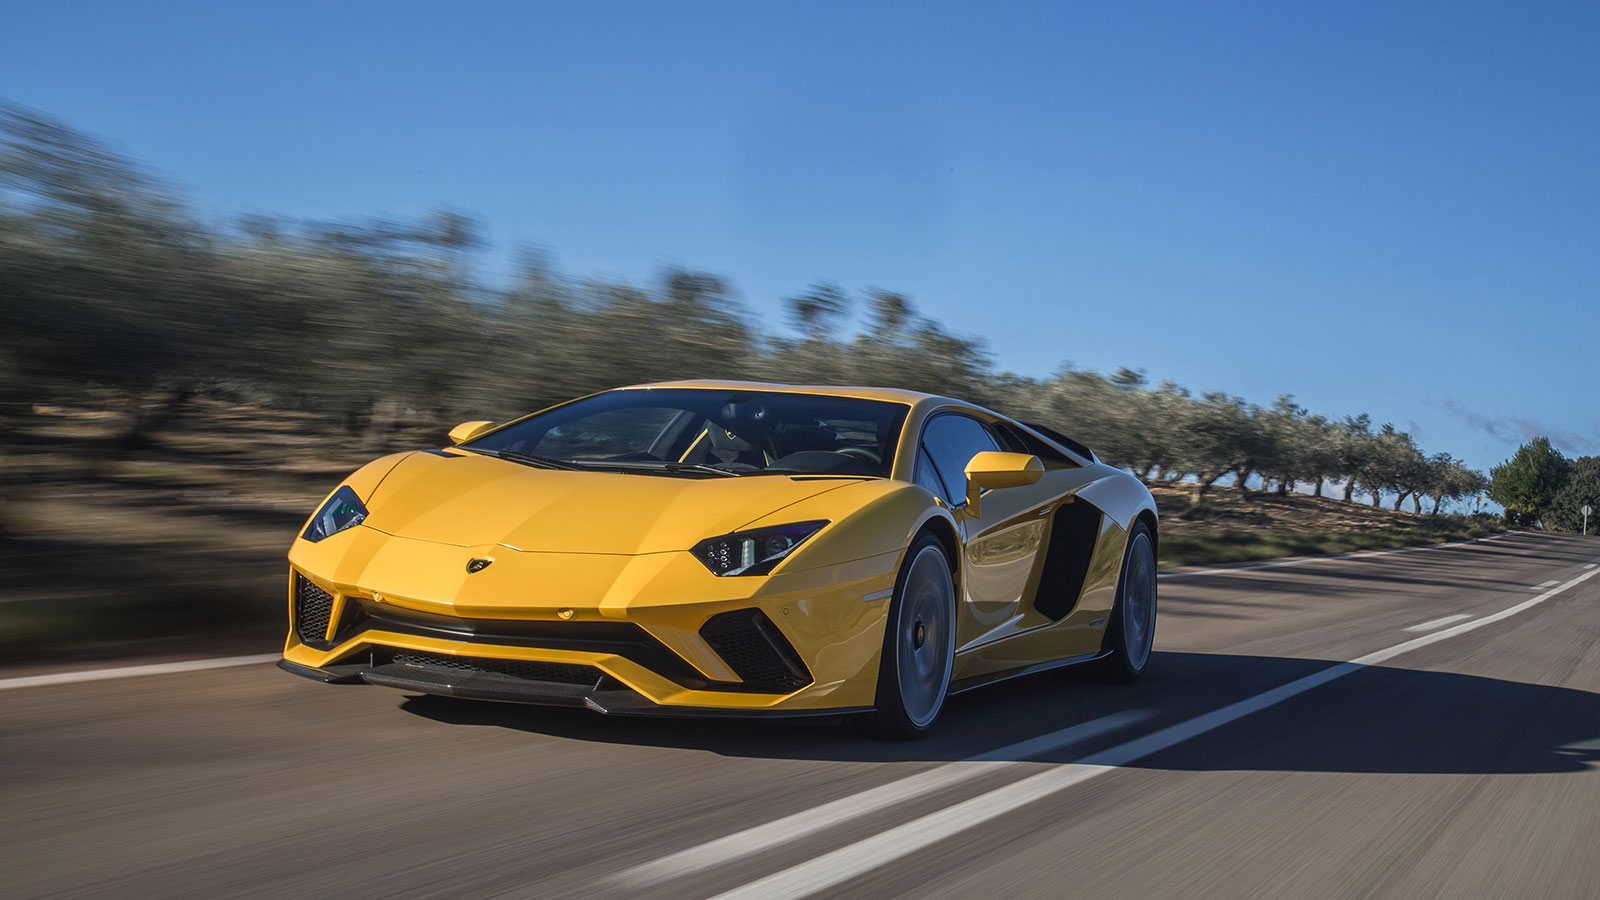 Lamborghini Aventador S Coupe - The Icon Reborn image 31